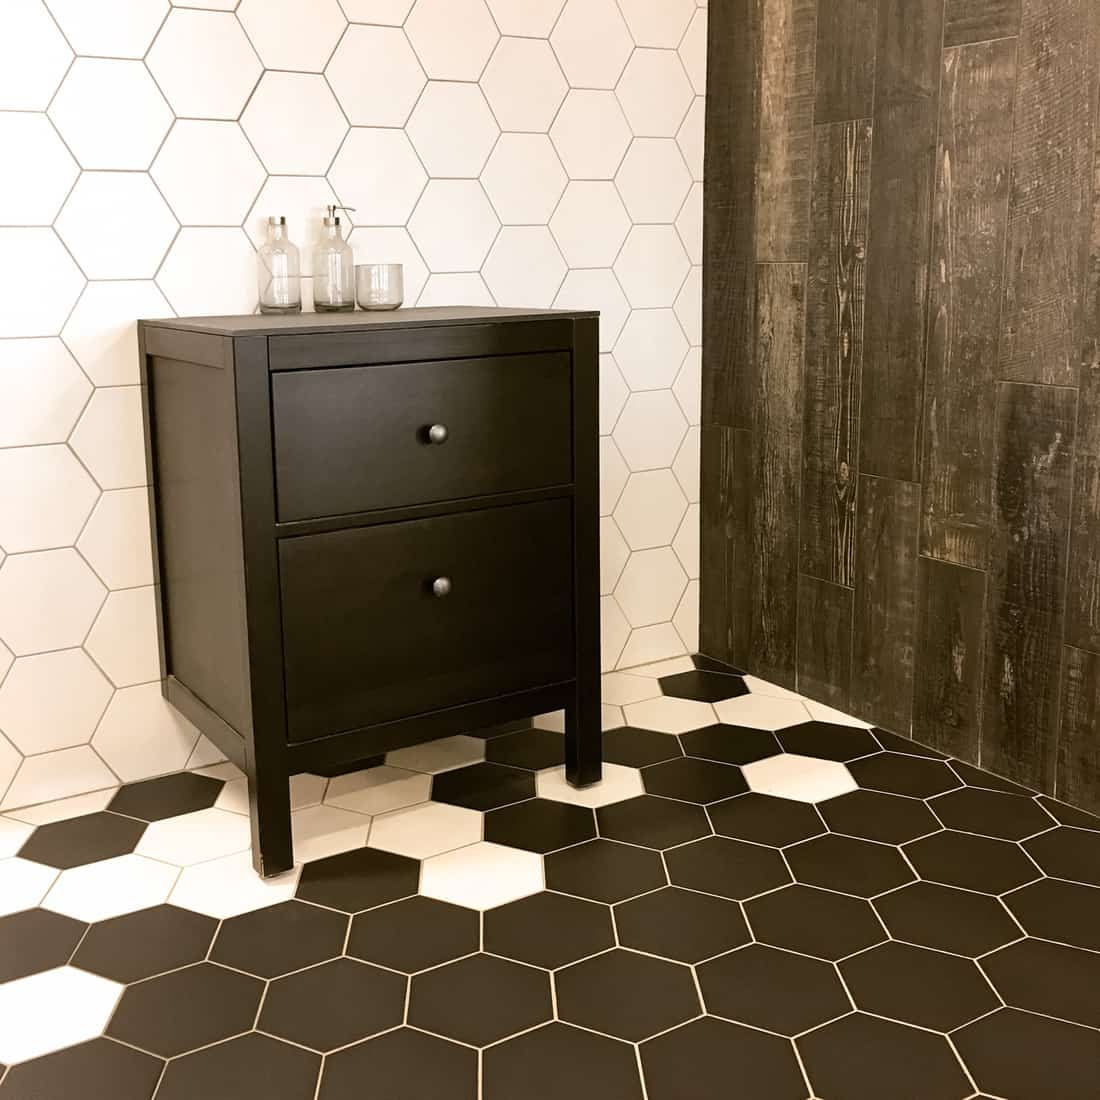 Spacious bathroom with tiled floor and wall, and black drawer unit. Contemporary design.